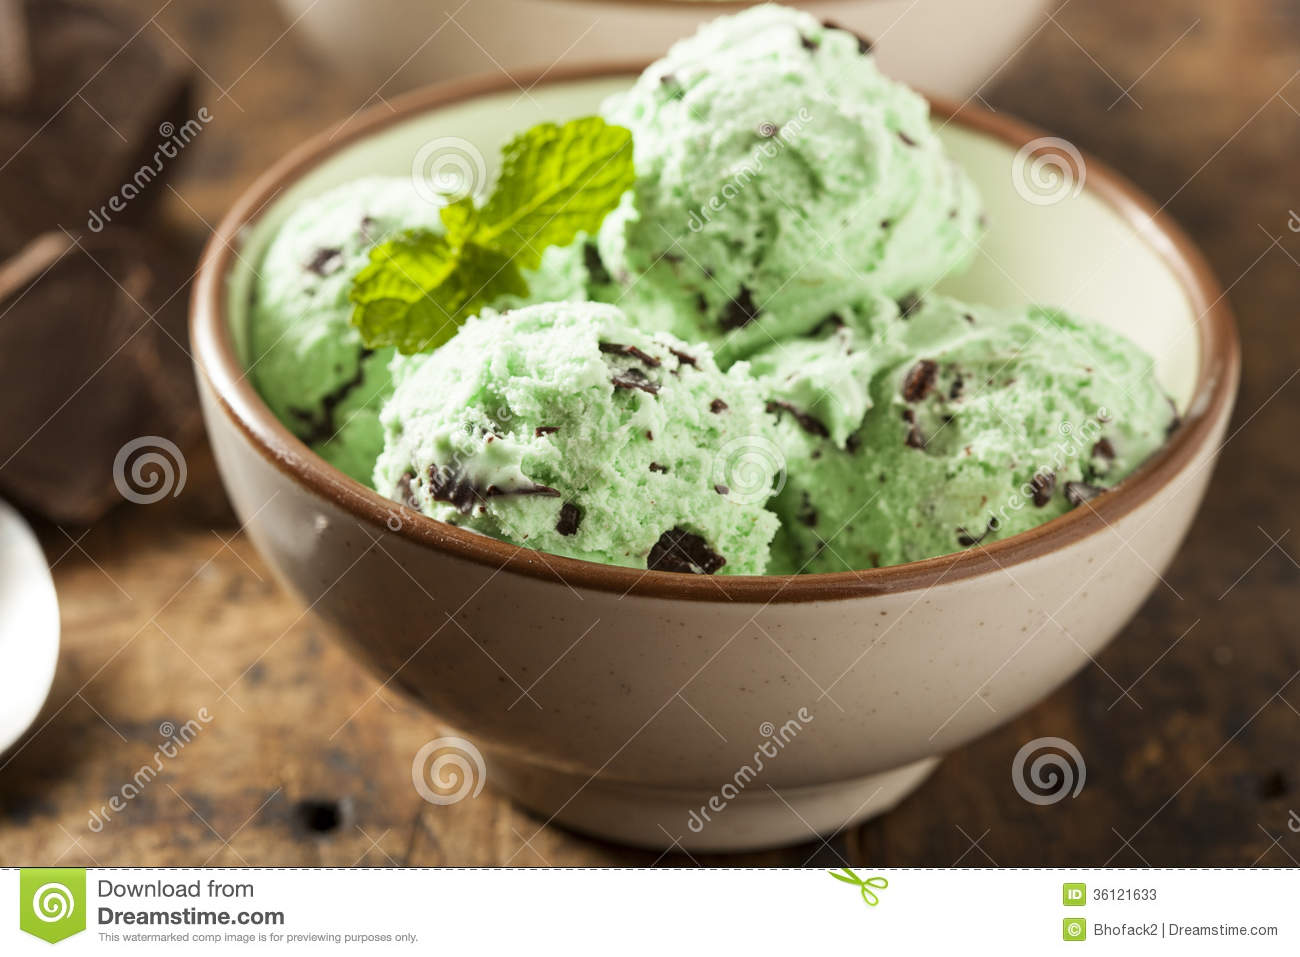 Mint Chocolate Chip Ice Cream Stock Photos, Images, & Pictures ...